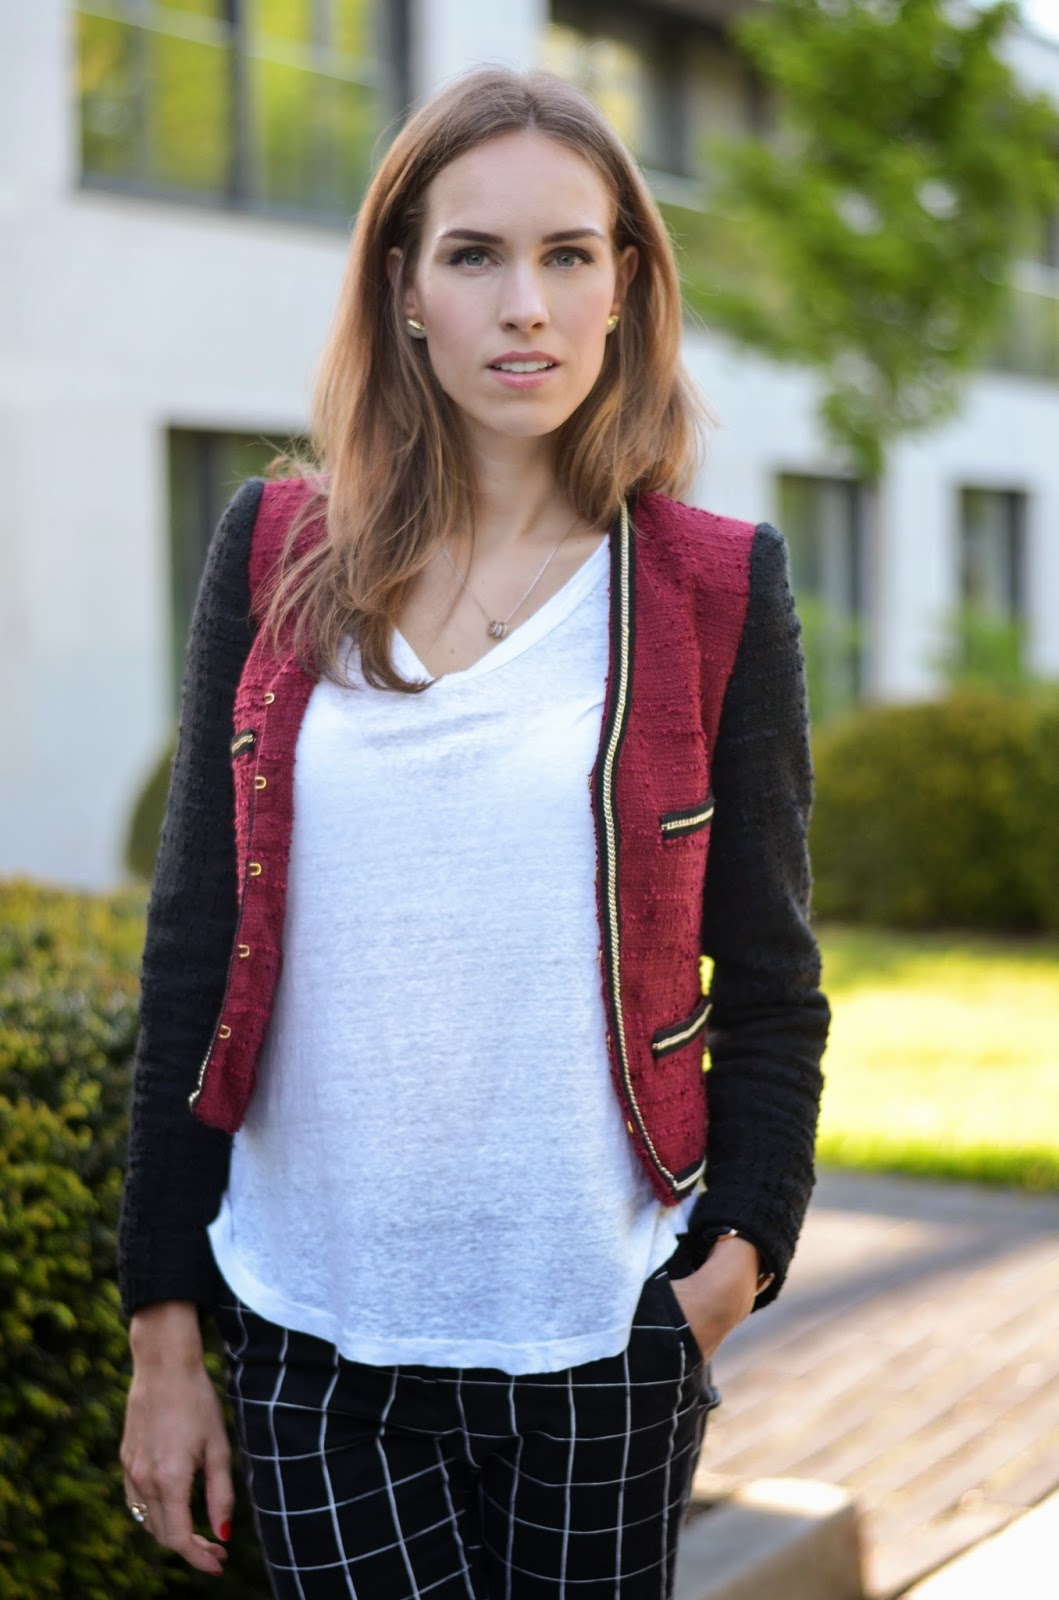 kristjaana mere casual summer outfit